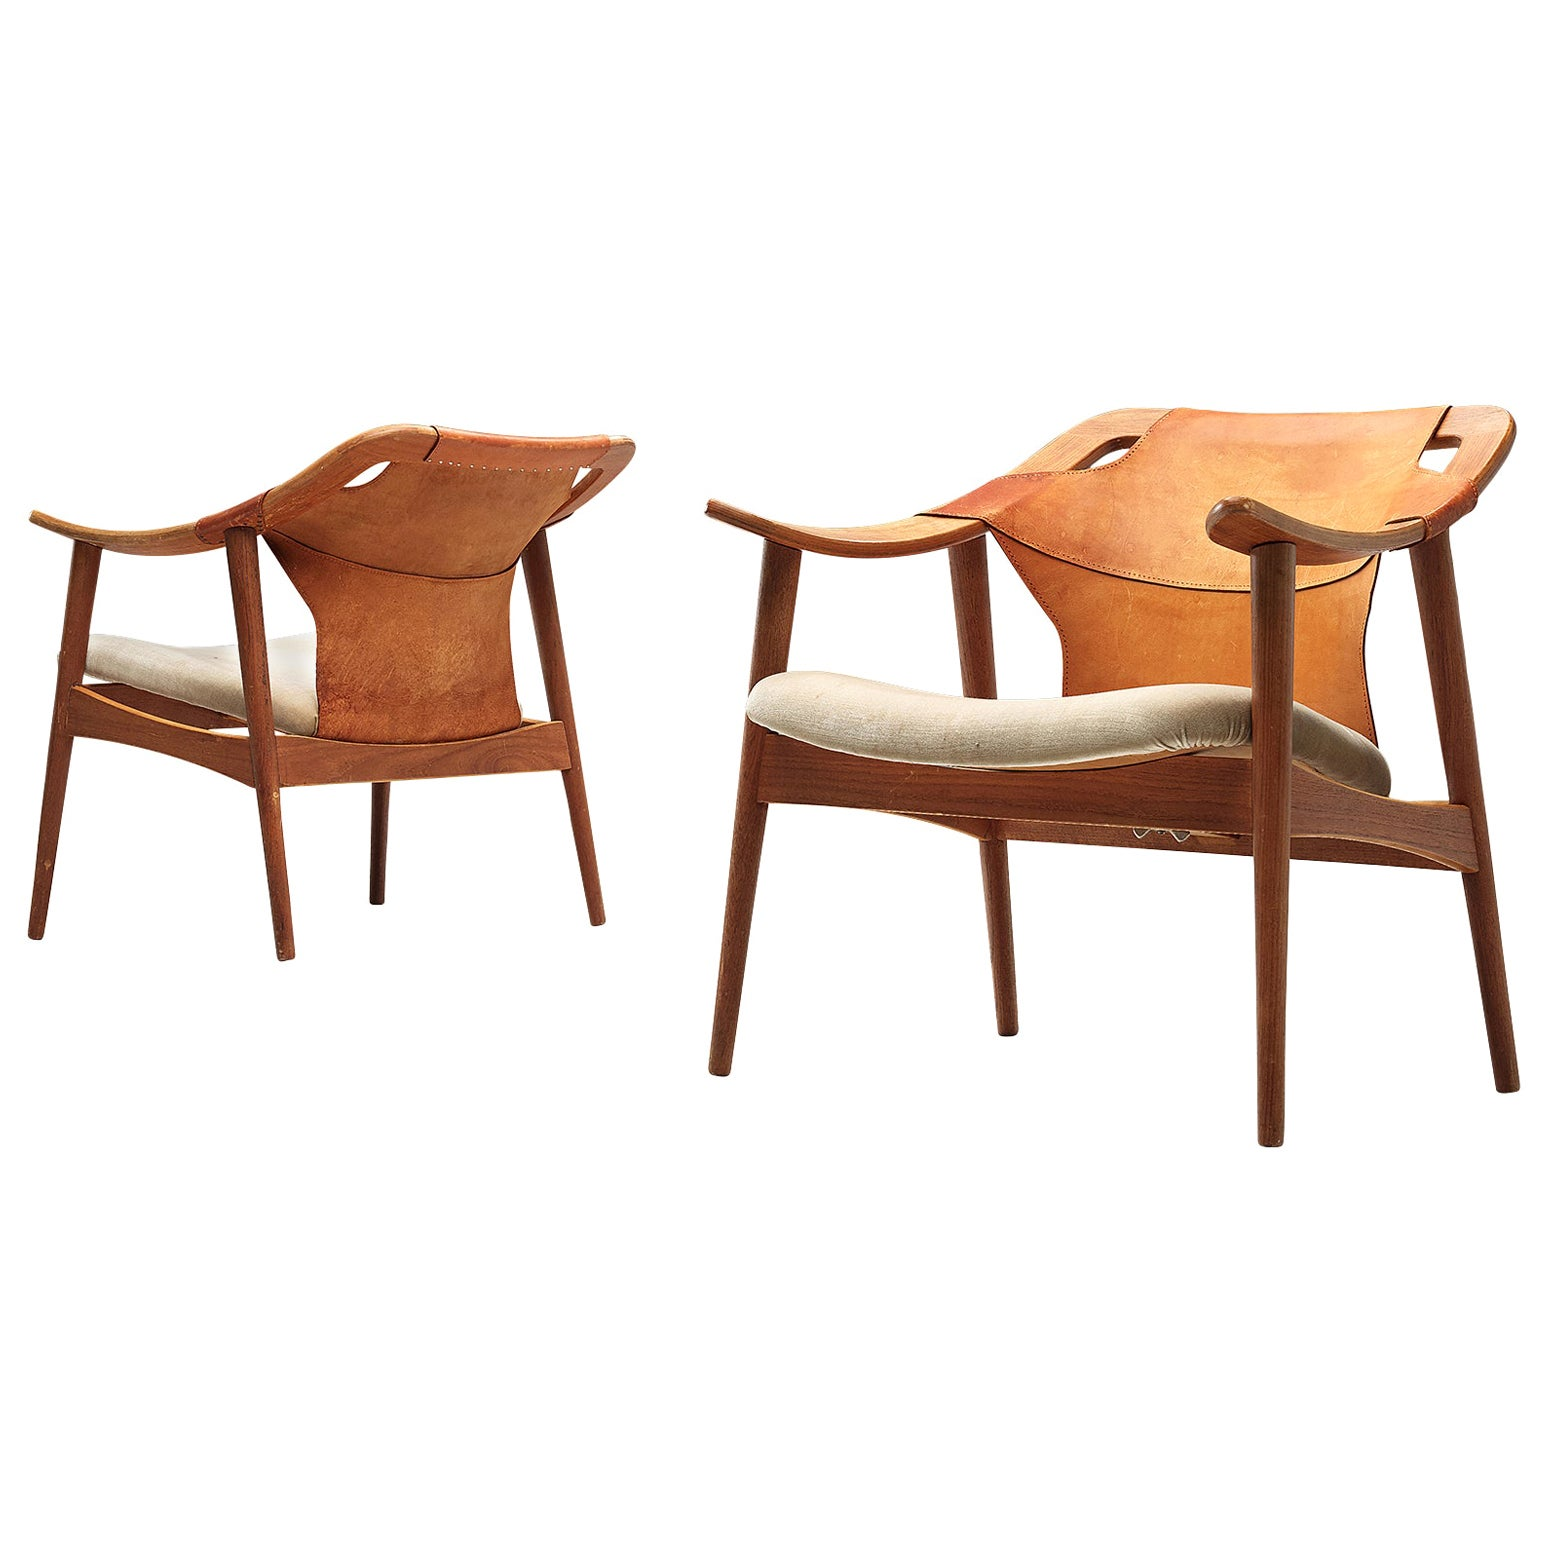 Arne Tidemand Ruud Pair of Armchairs Model '3050' in Leather and Oak